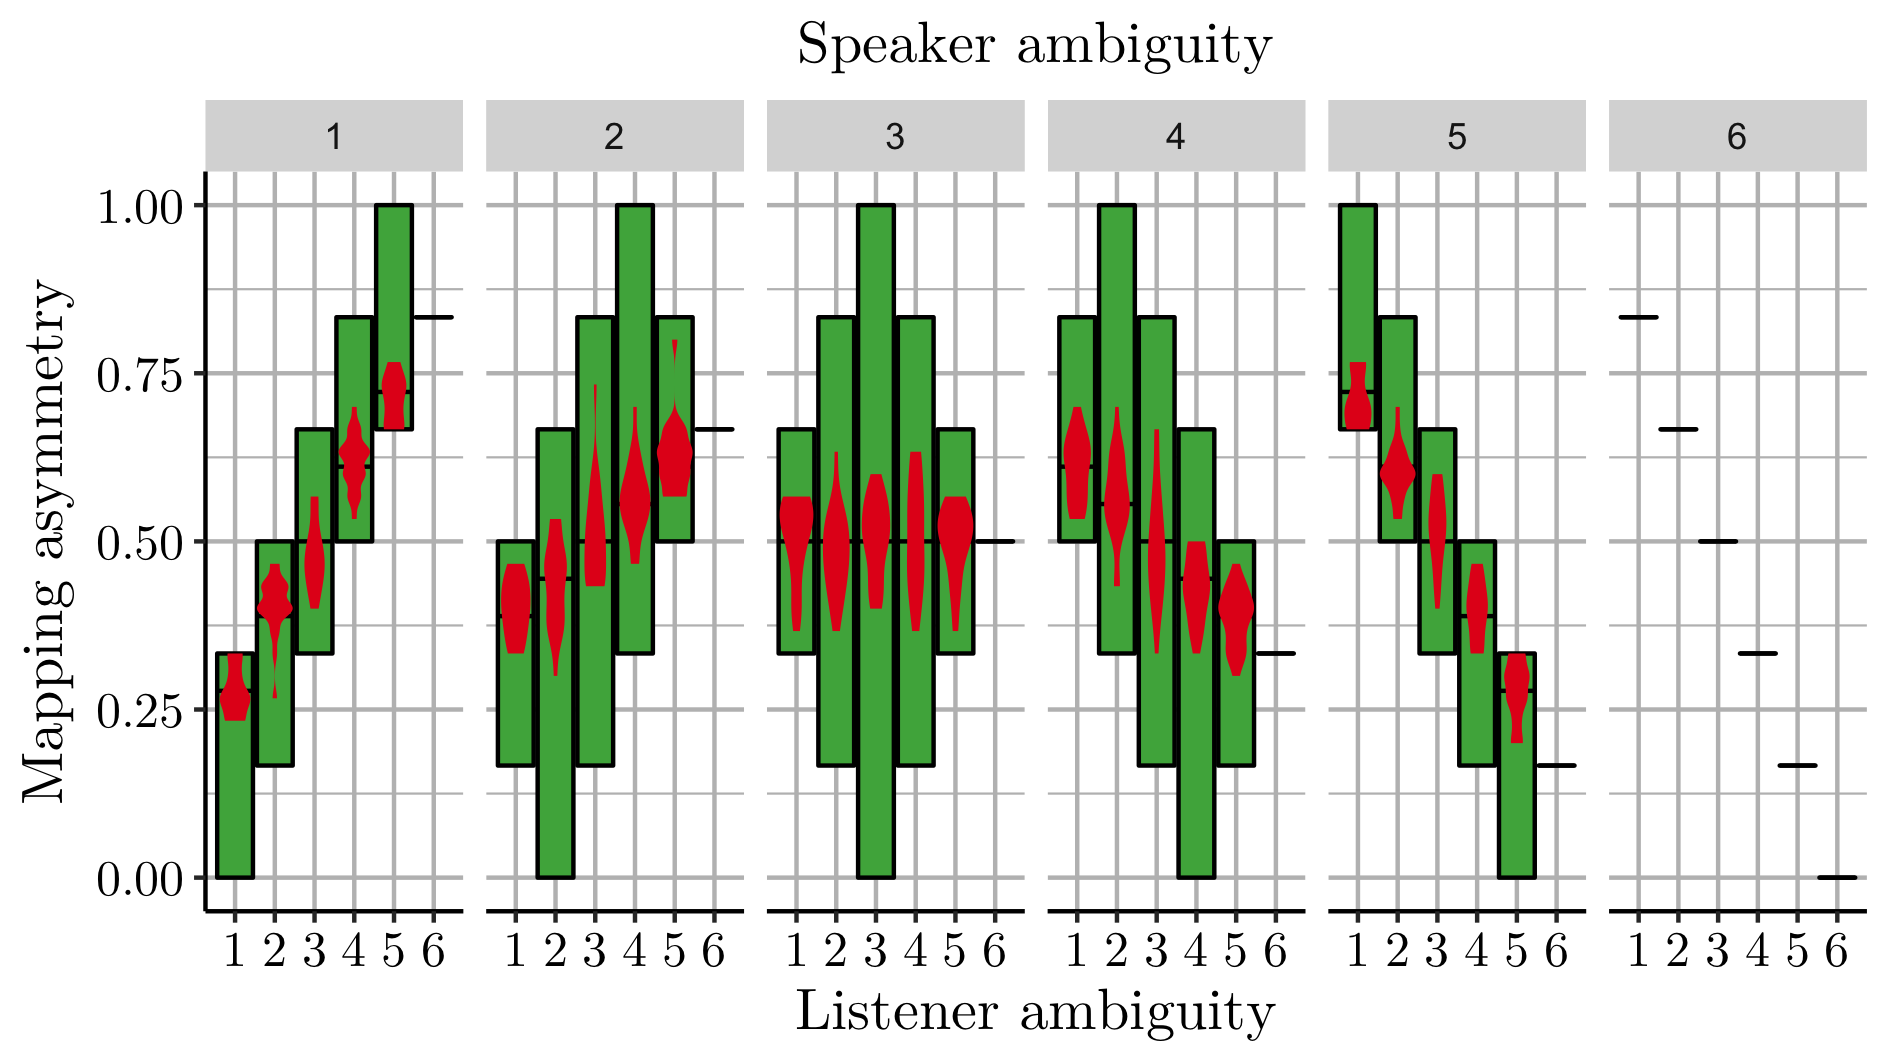 The green bars display the minimum, maximum and mean (central black bars) asymmetry. The minimum and maximum are theoretical upper and lower limits, no trials can exist outside the green bars. The mean is based on the randomized generation procedure described above. The red violin plots are again the randomly generated trials.